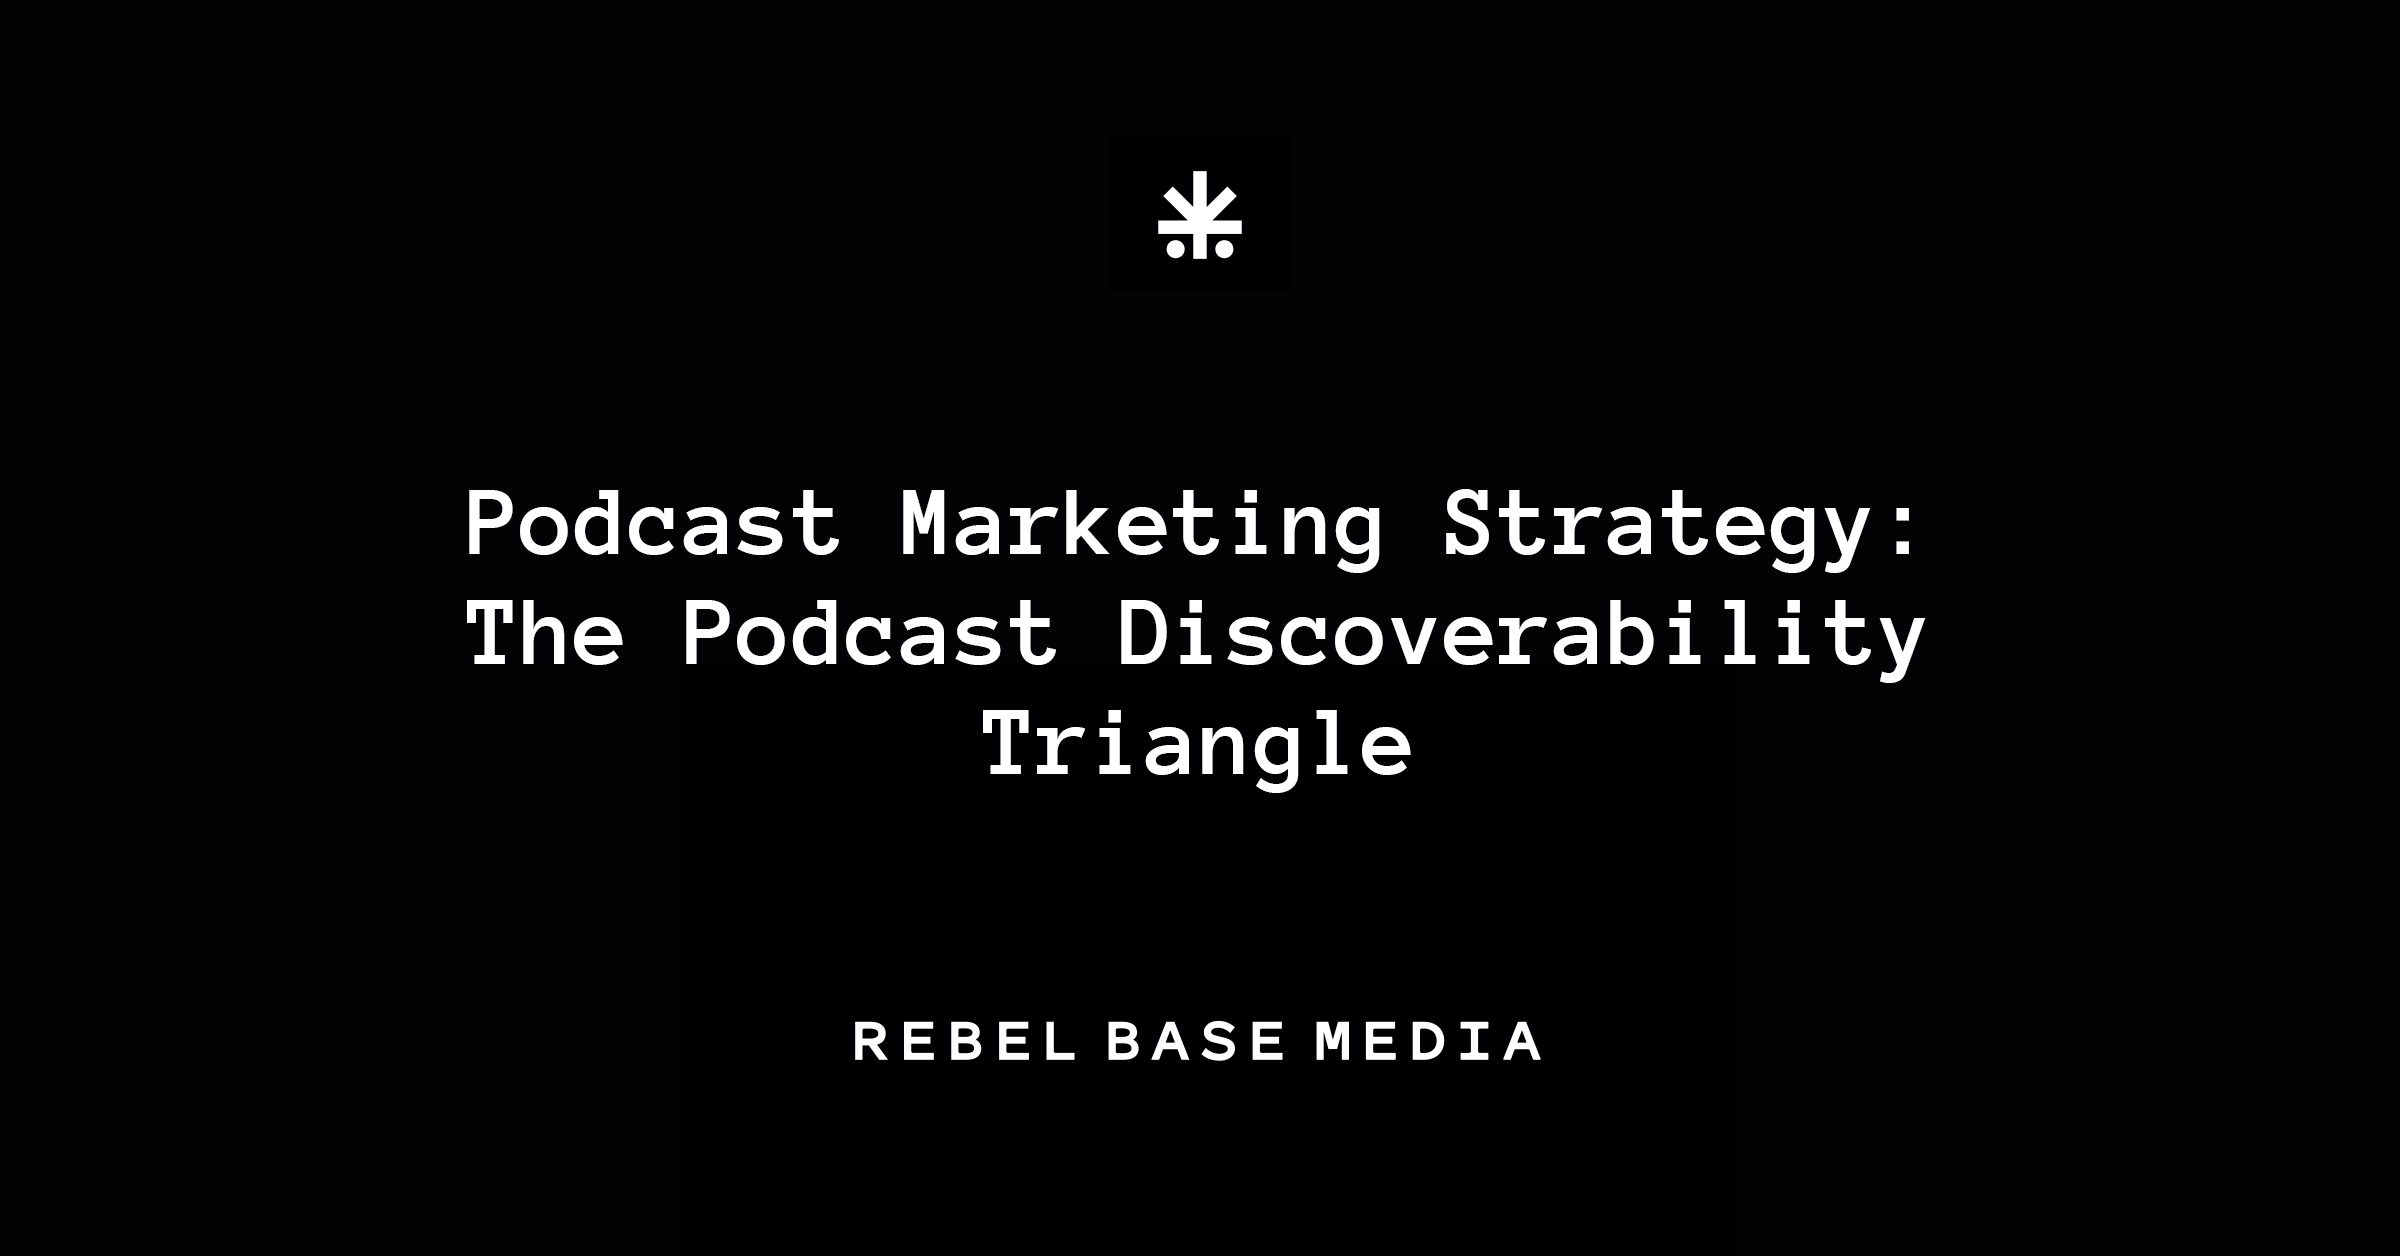 Podcast Marketing Strategy The Podcast Discoverability Triangle - FB